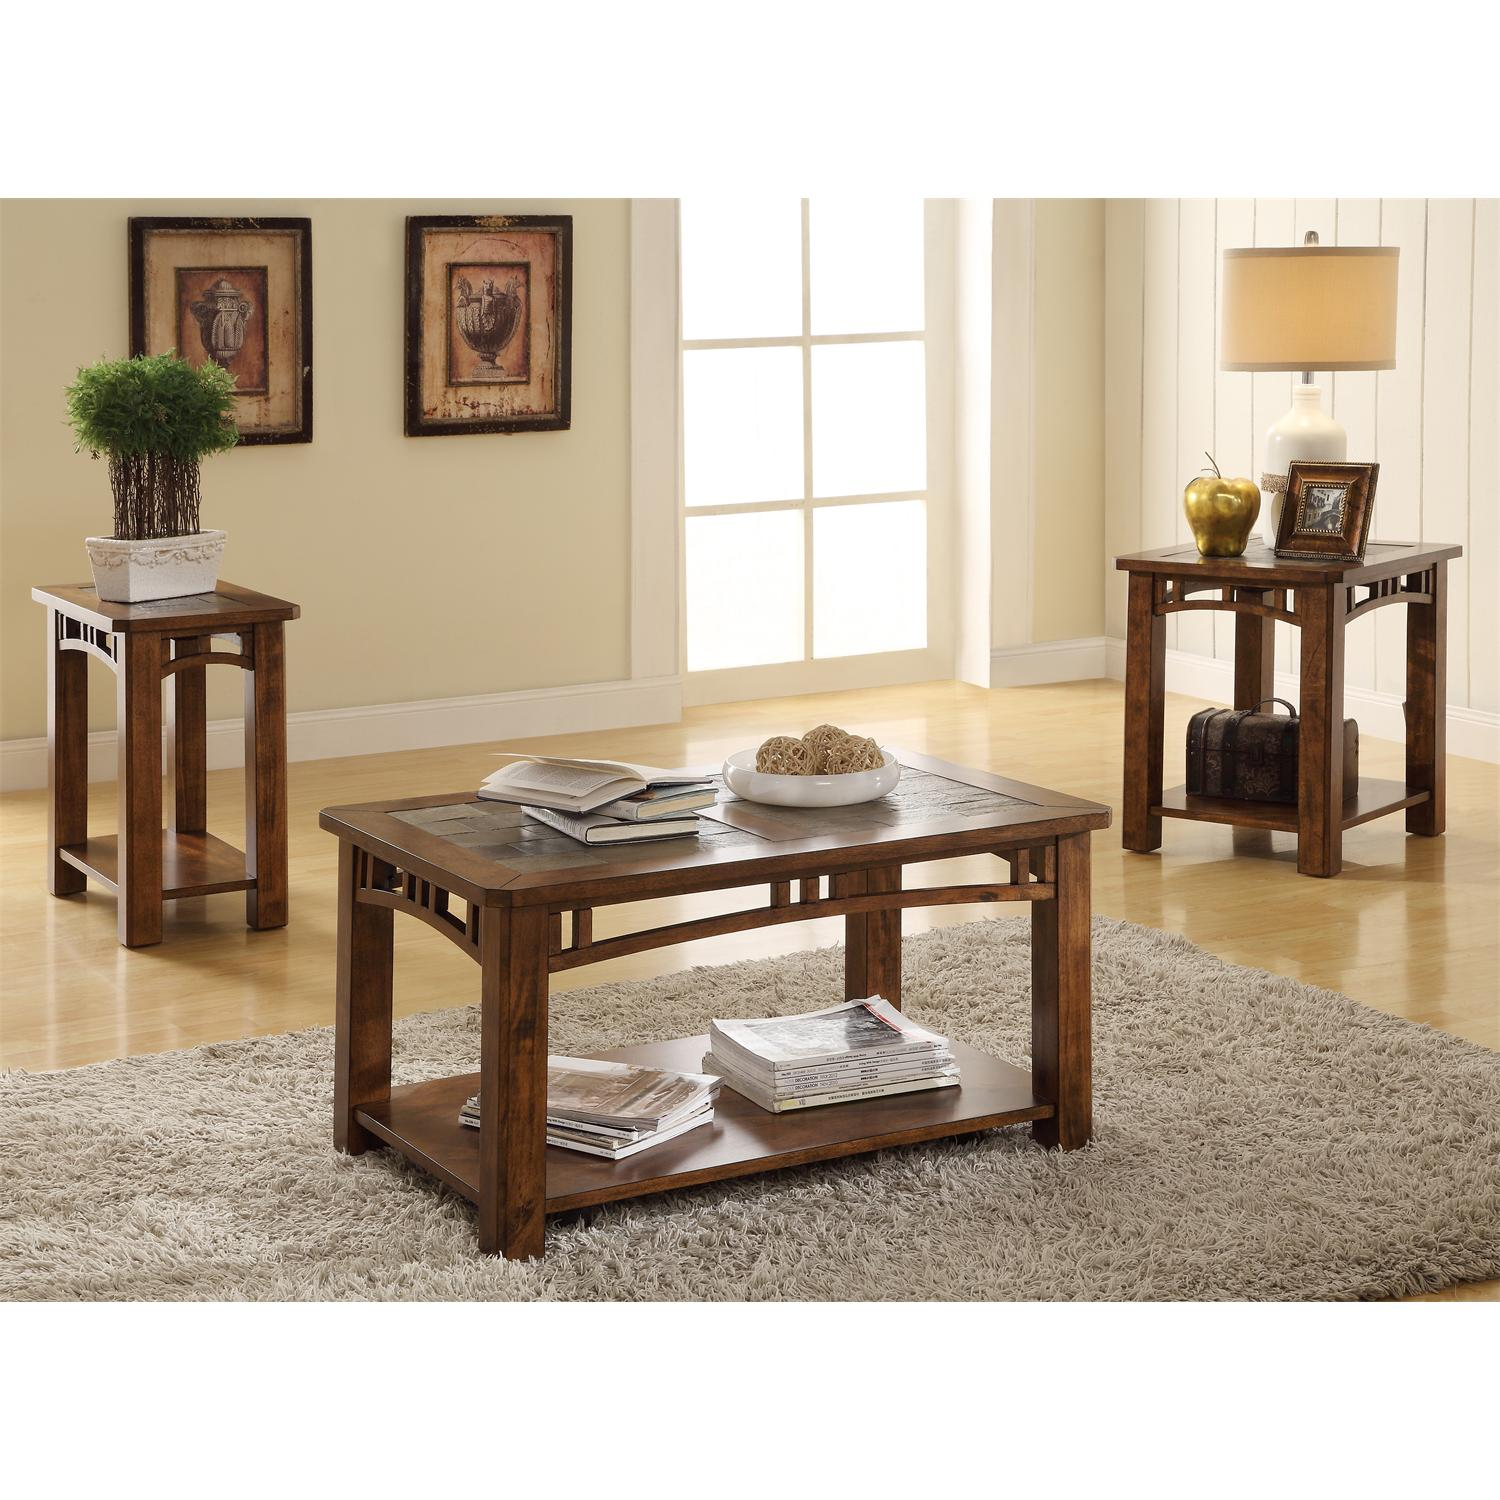 Preston Caster Coffee Table Gamburgs Furniture